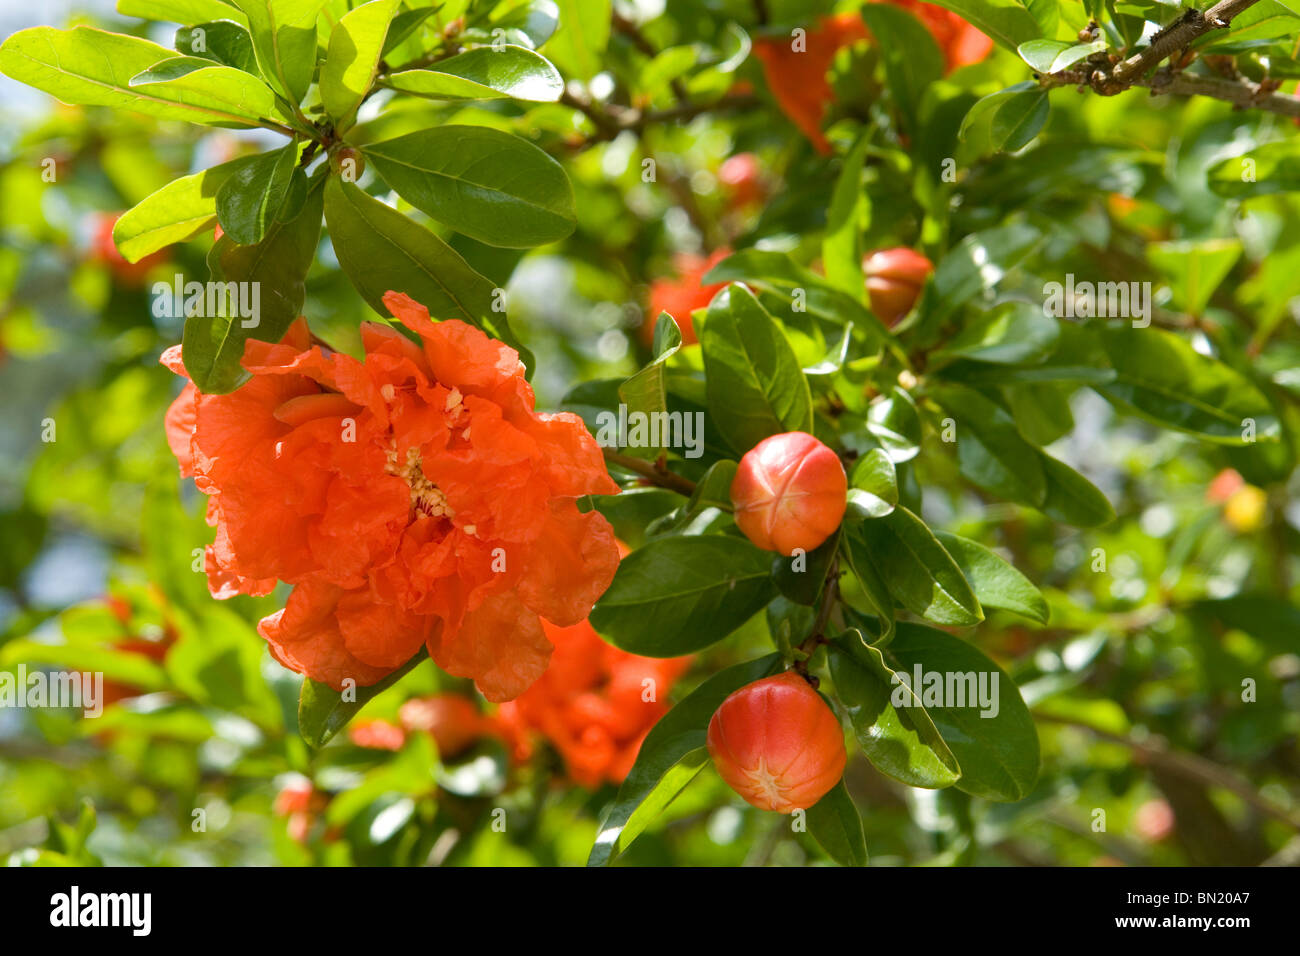 Flowers and buds of a Pomegranate tree (Punica granatum). Boutons et fleurs de Grenadier (Punica granatum). - Stock Image